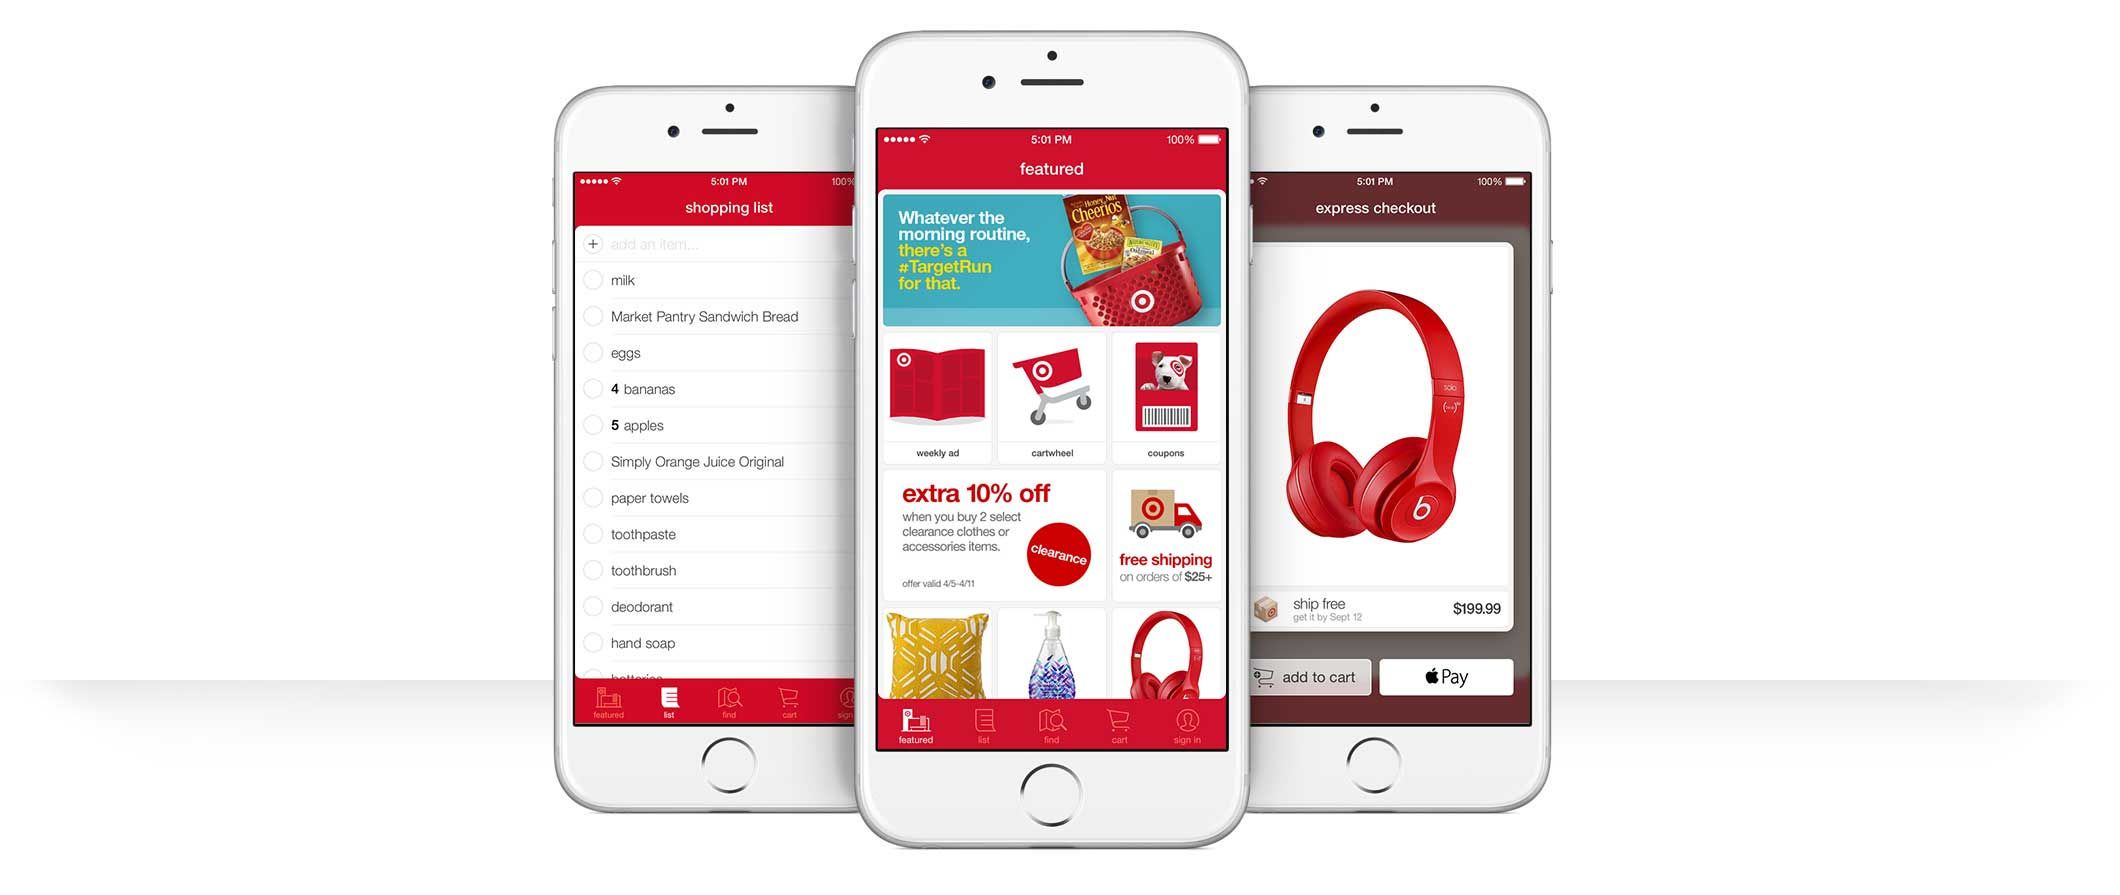 Target App Features include shopping list and express checkout